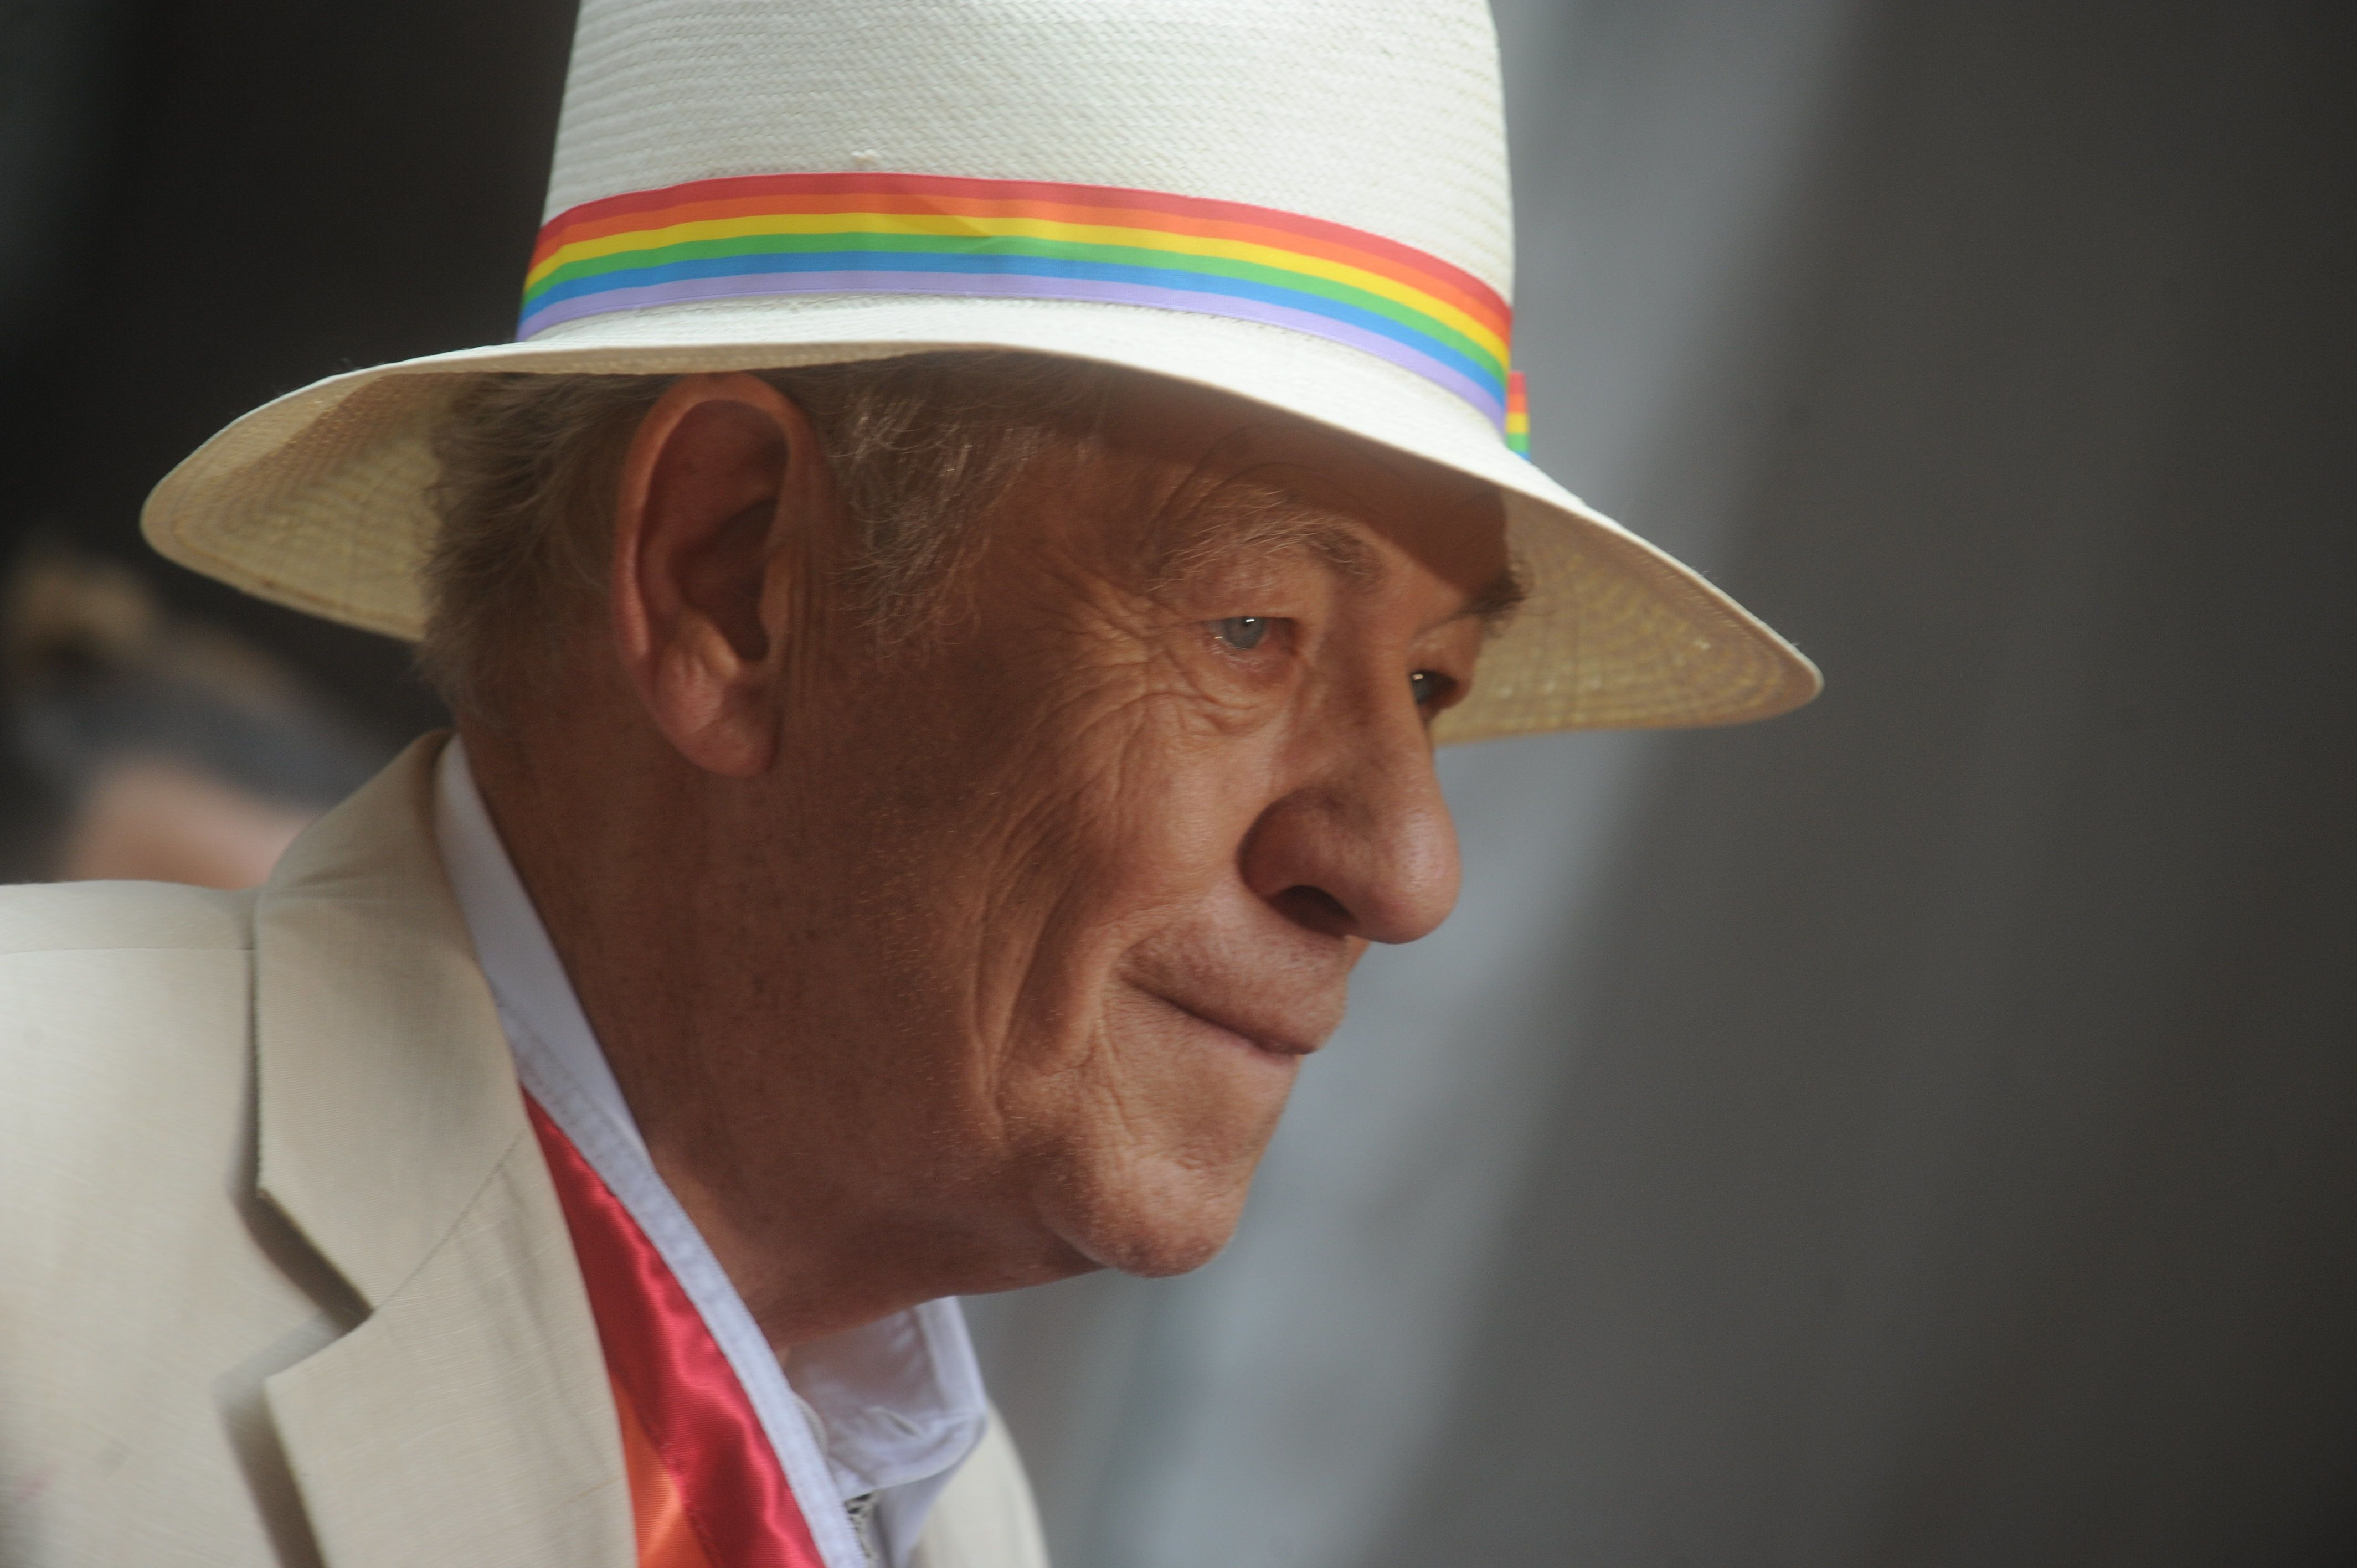 Grand Marshal Sir Ian McKellen rides in a Fiat 500 during the 2015 New York City Pride march in New York on June 28, 2015. Photo by Dennis Van Tine/ABACAUSA.COM